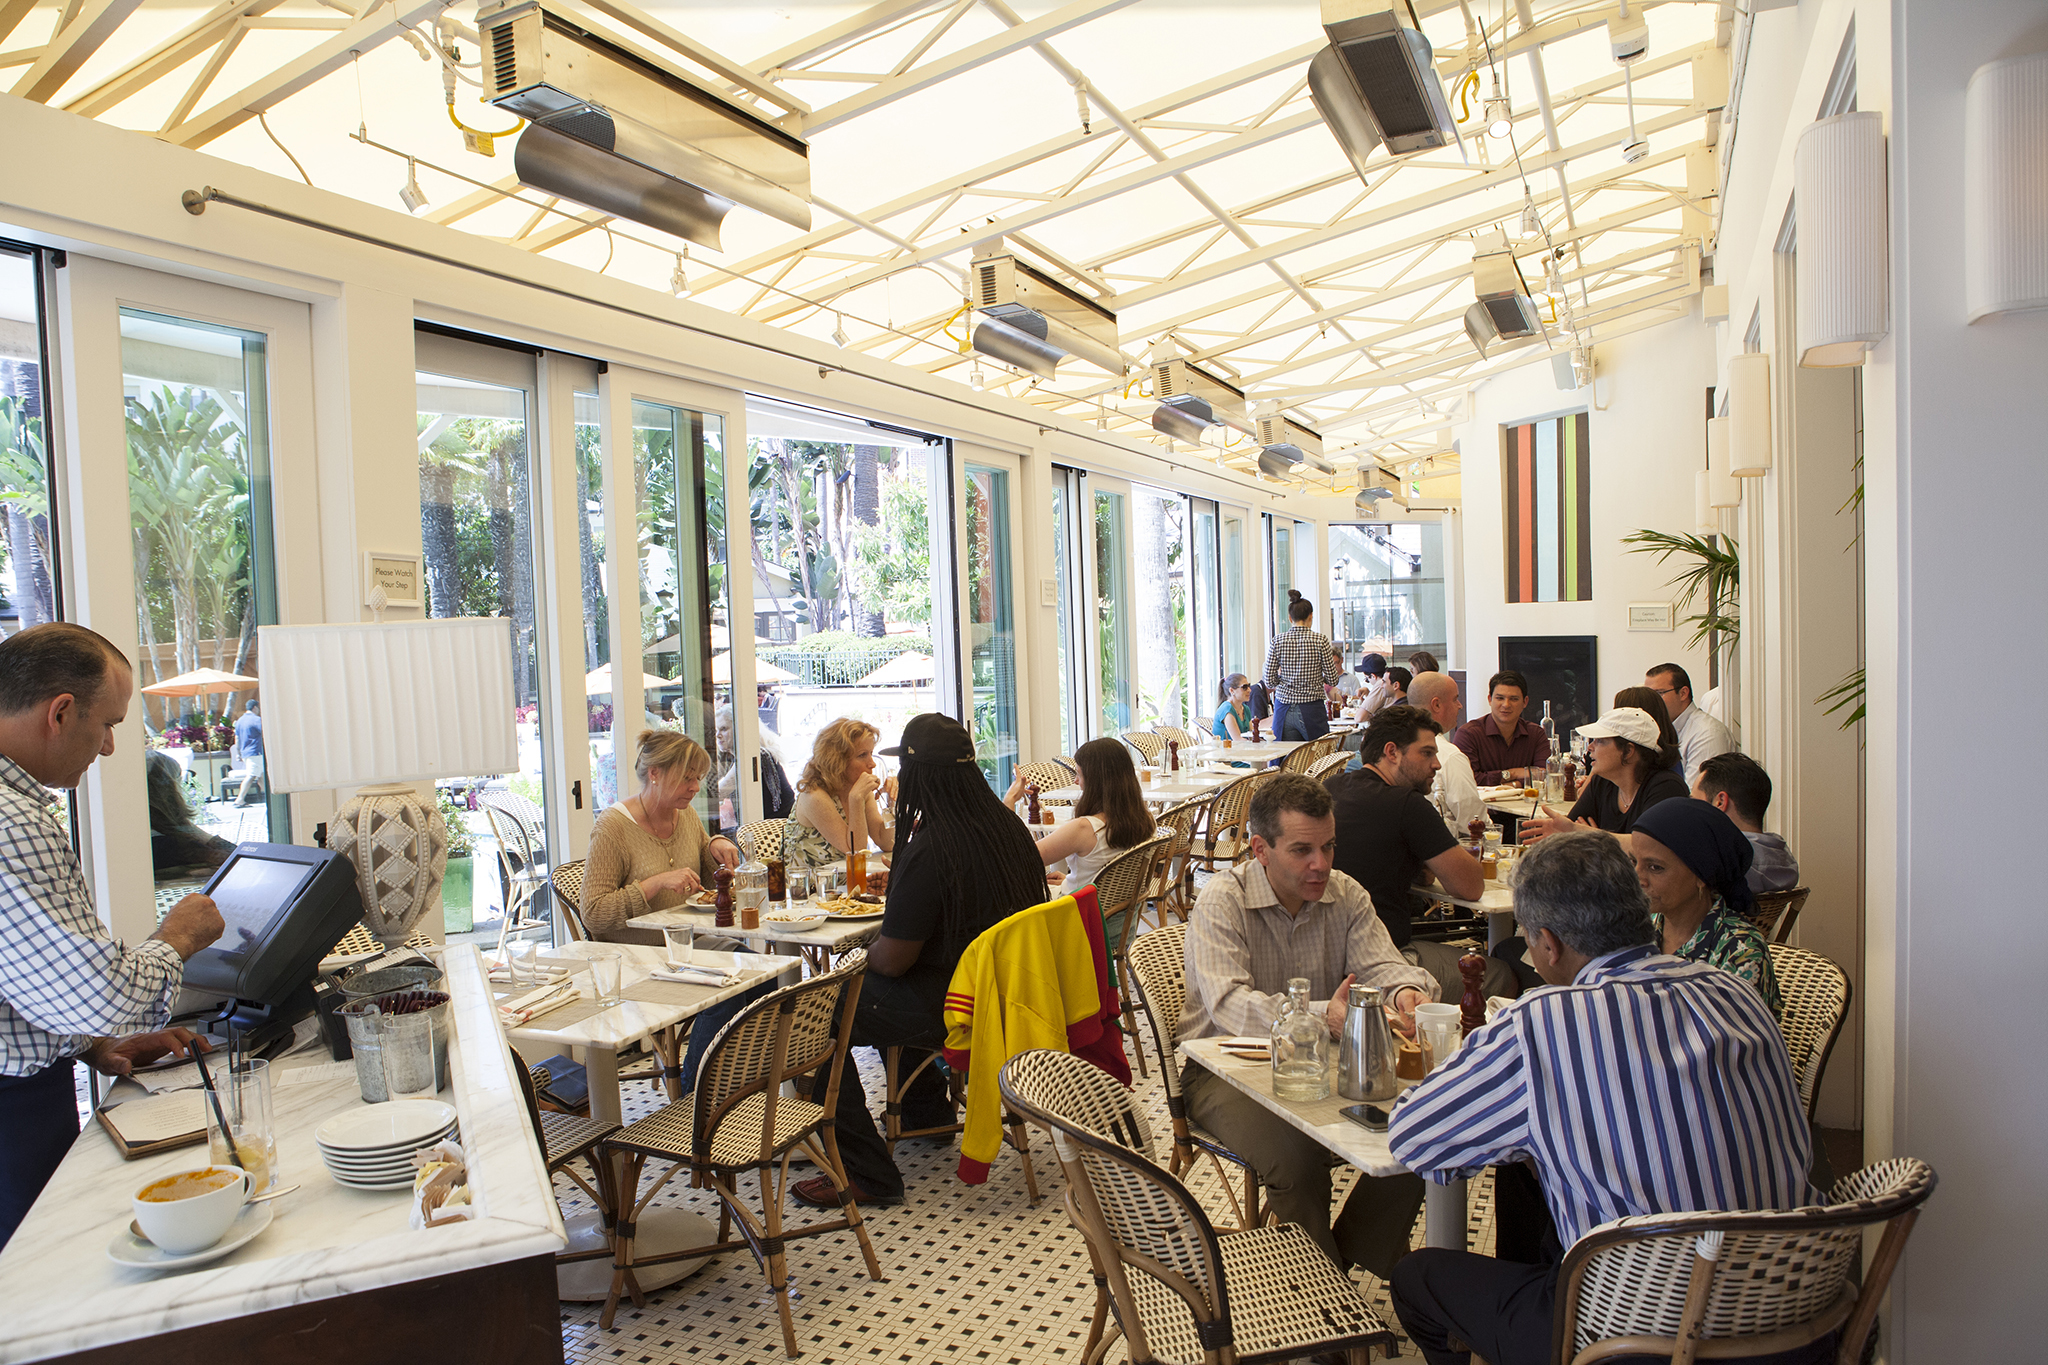 Best hotel brunches in L.A.